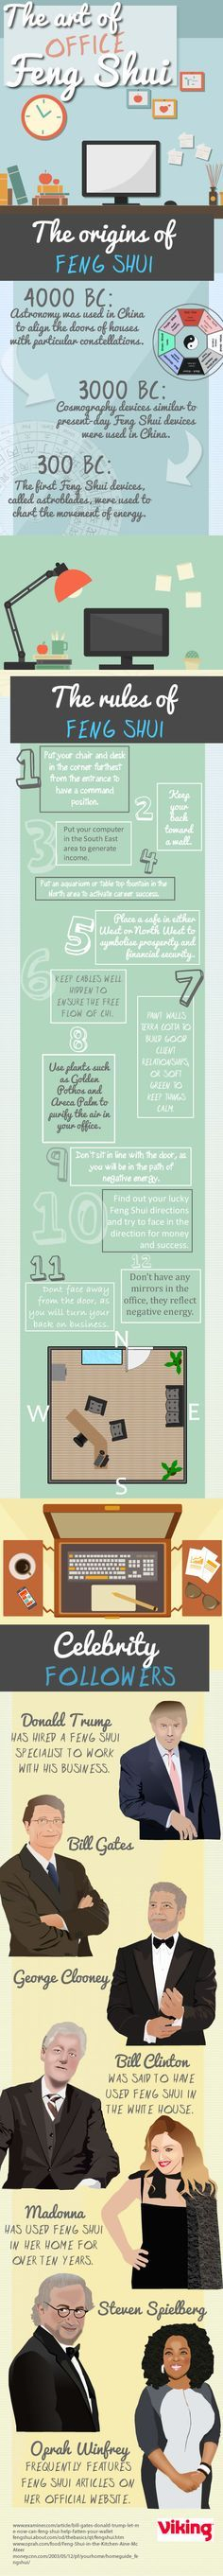 The Art of Feng Shui in the Office - Practitioners believe it can improve success and prosperity. #FengShui